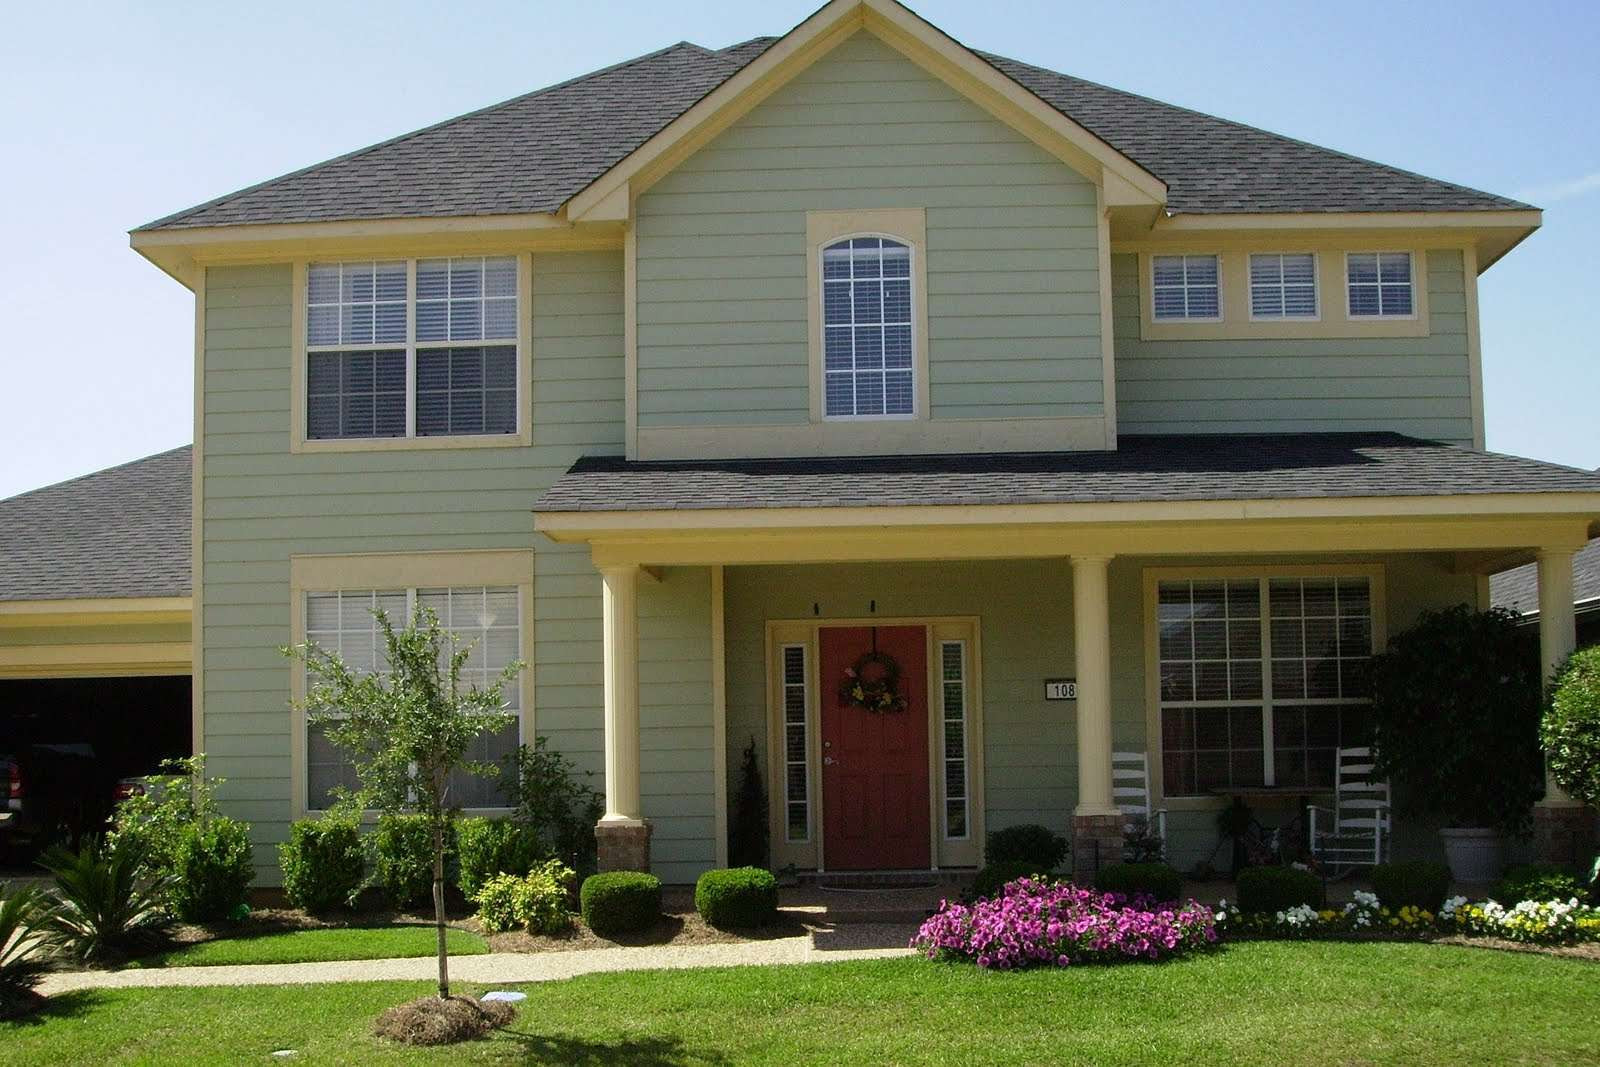 Best ideas about Best Exterior House Paint Colors . Save or Pin Guide to Choosing the Right Exterior House Paint Colors Now.